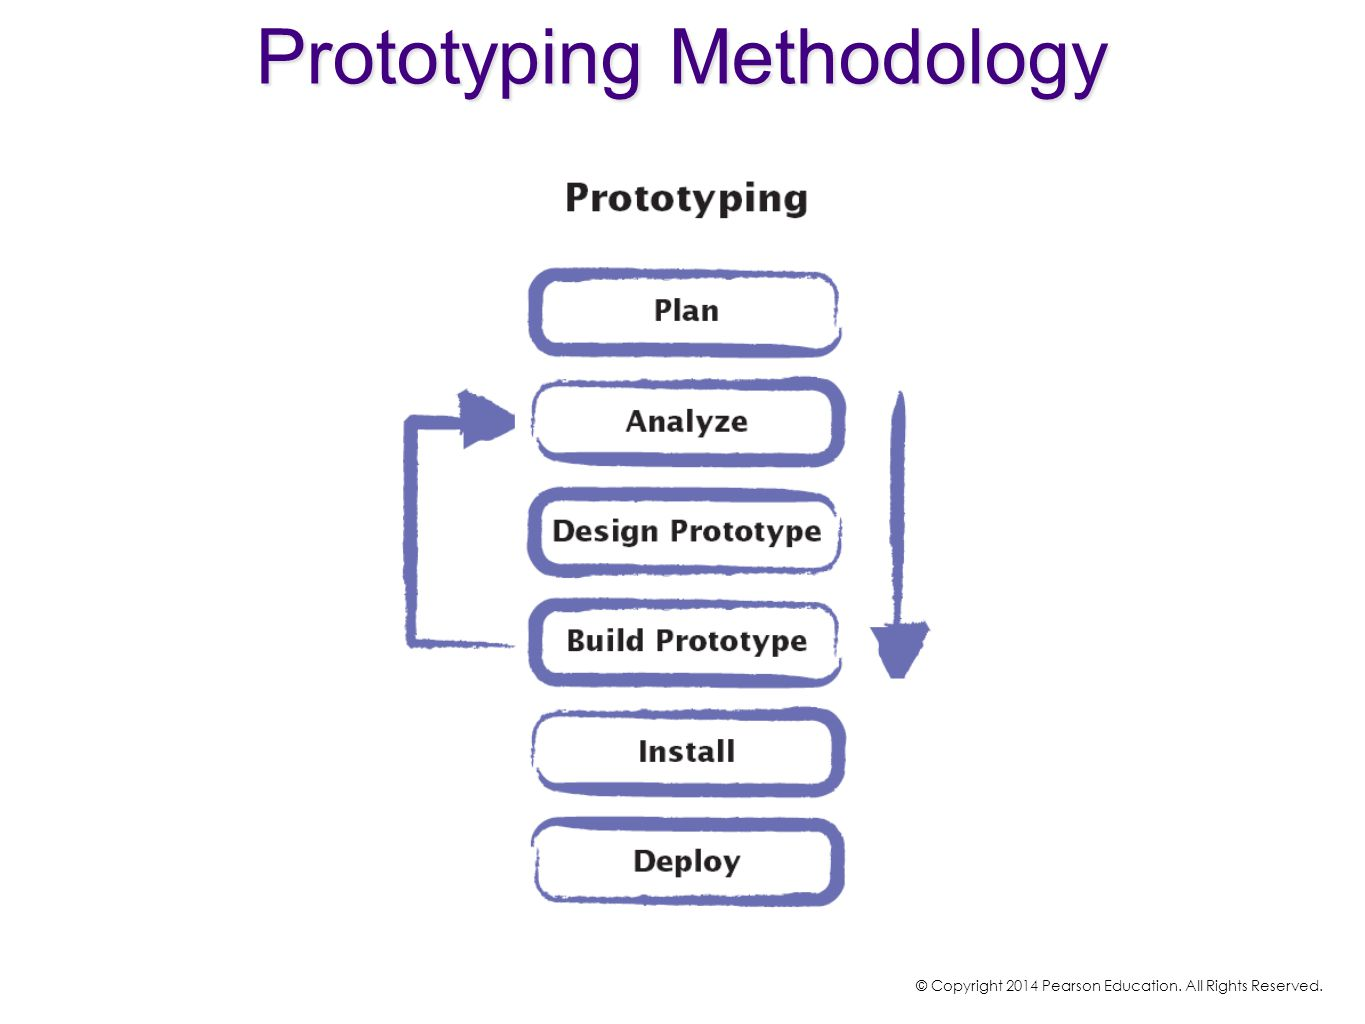 Prototyping Methodology © Copyright 2014 Pearson Education. All Rights Reserved.